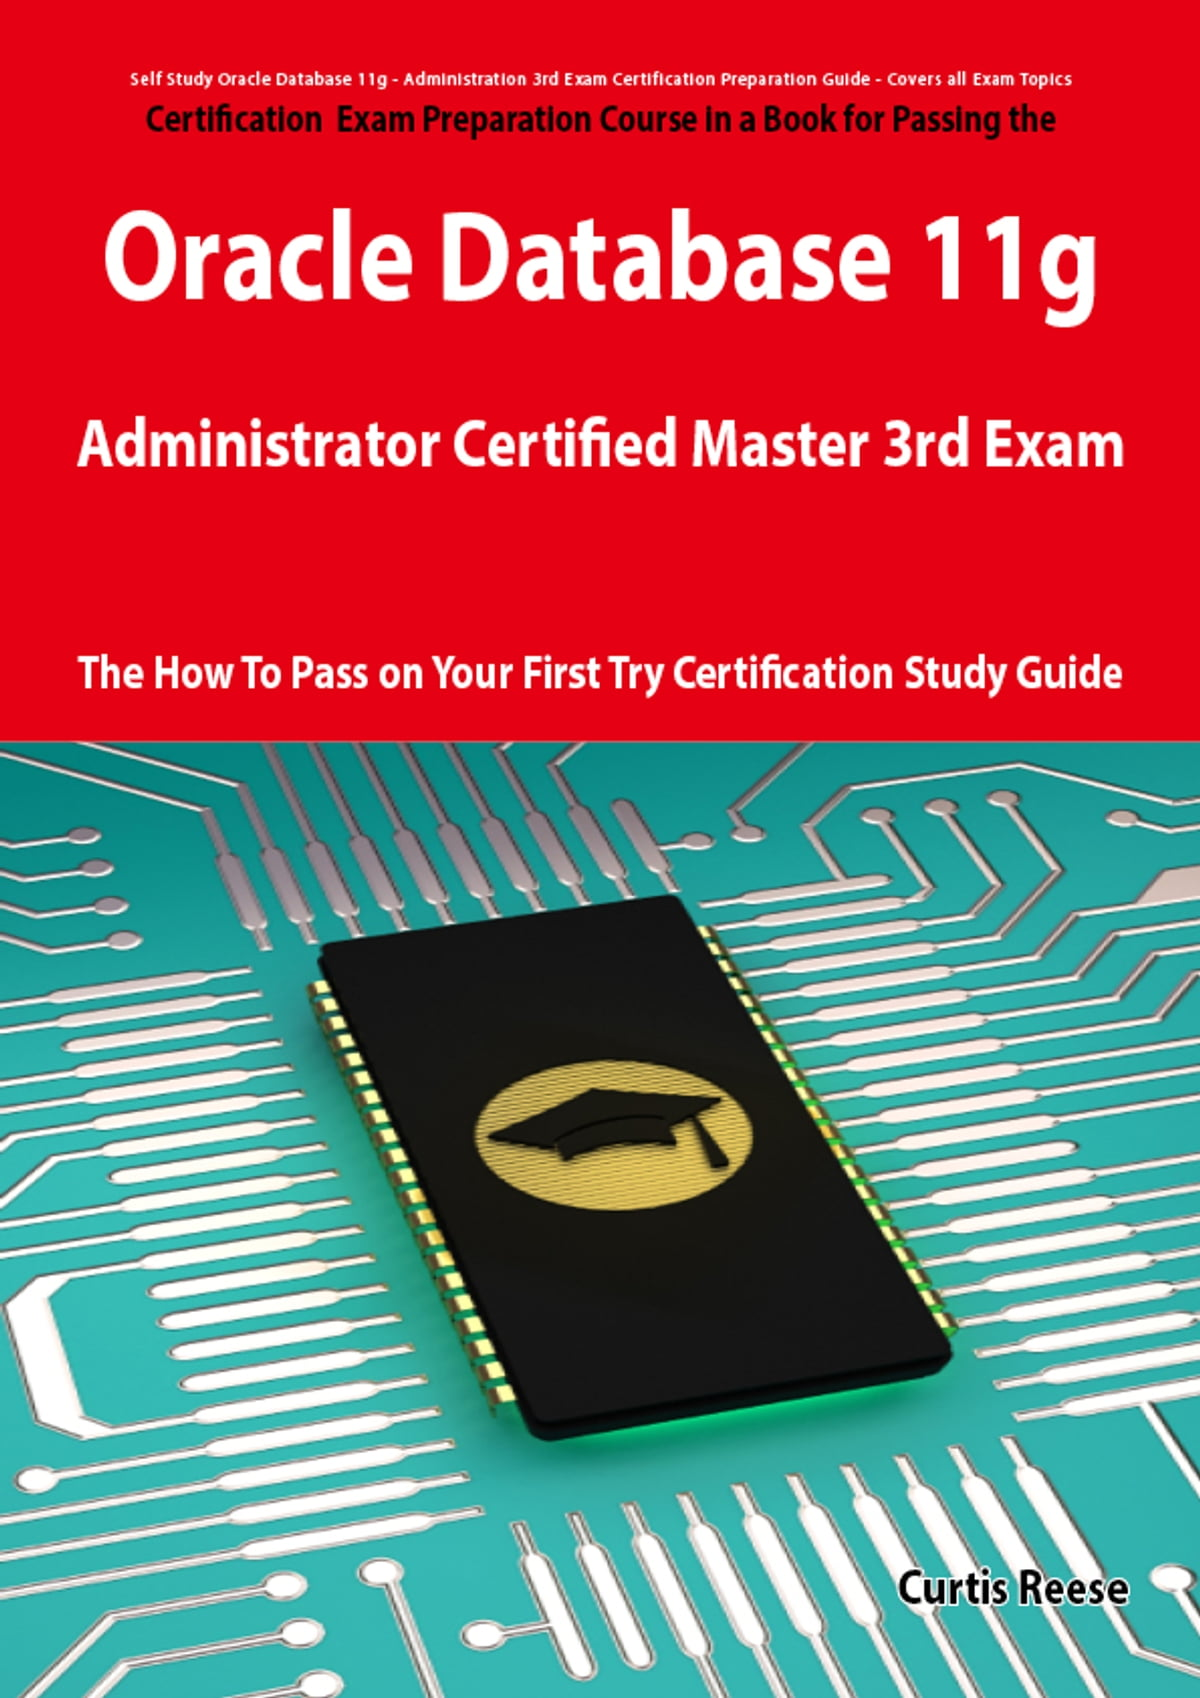 Oracle Database 11g Administrator Certified Master Third Exam